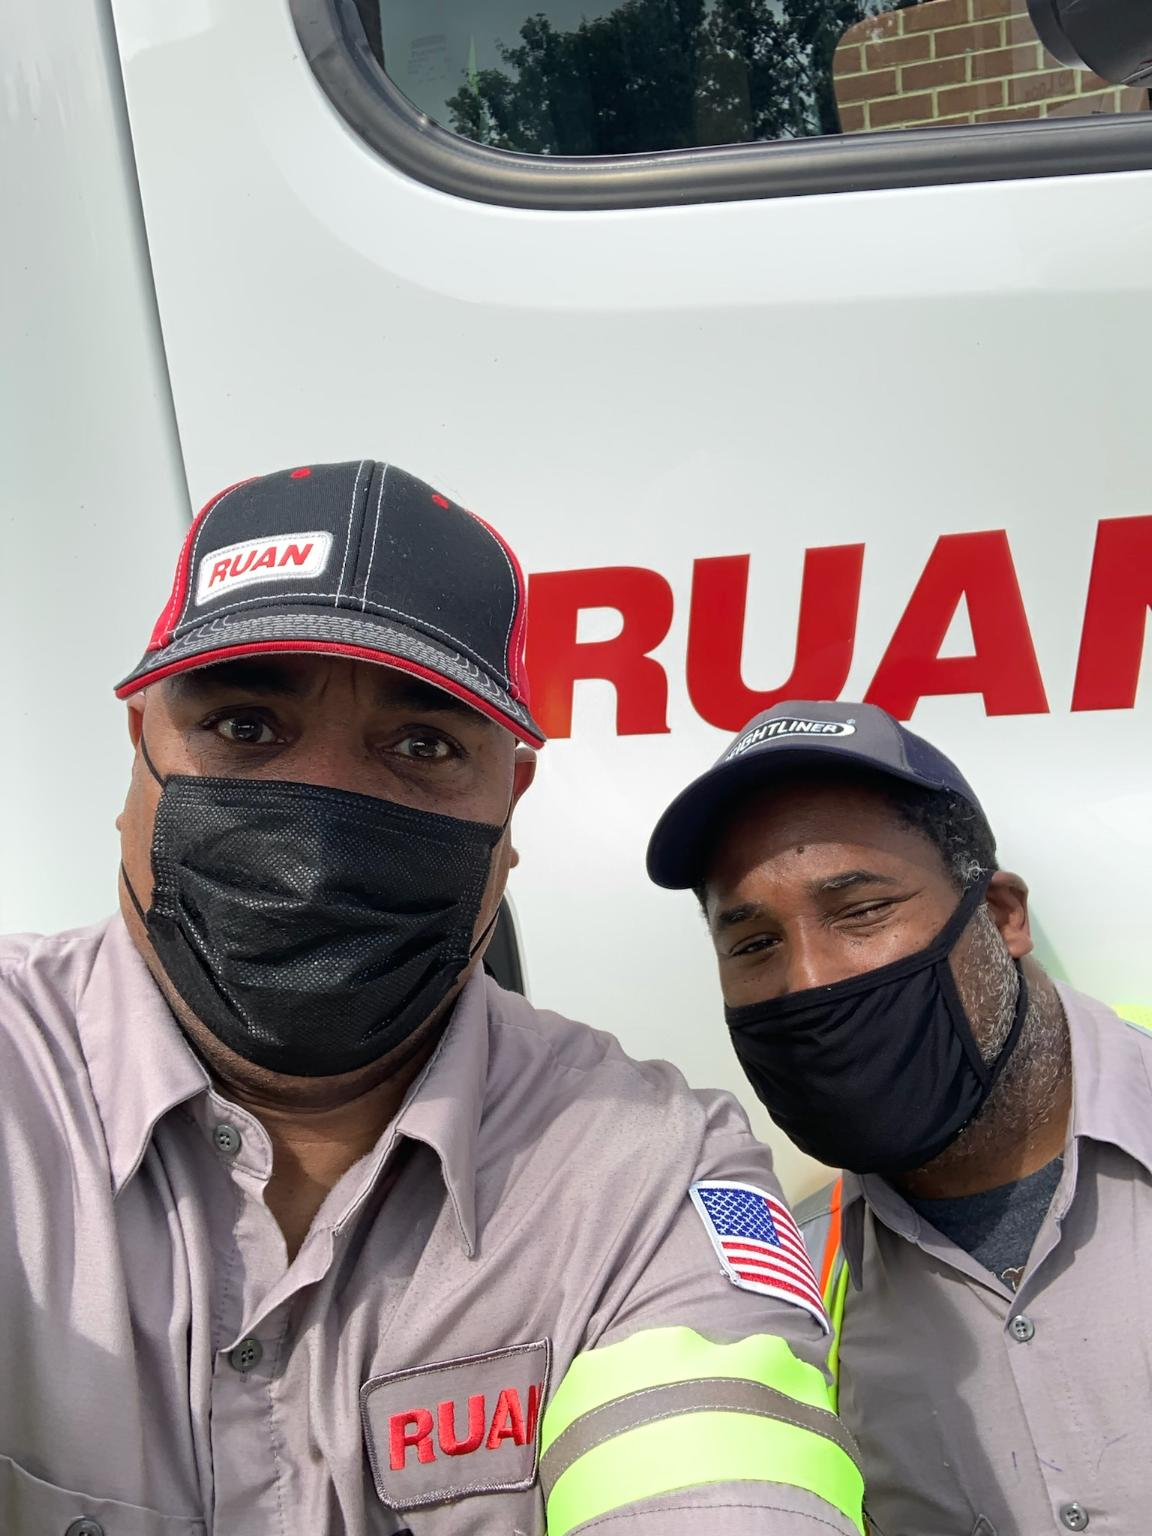 Ruan is hiring team drivers